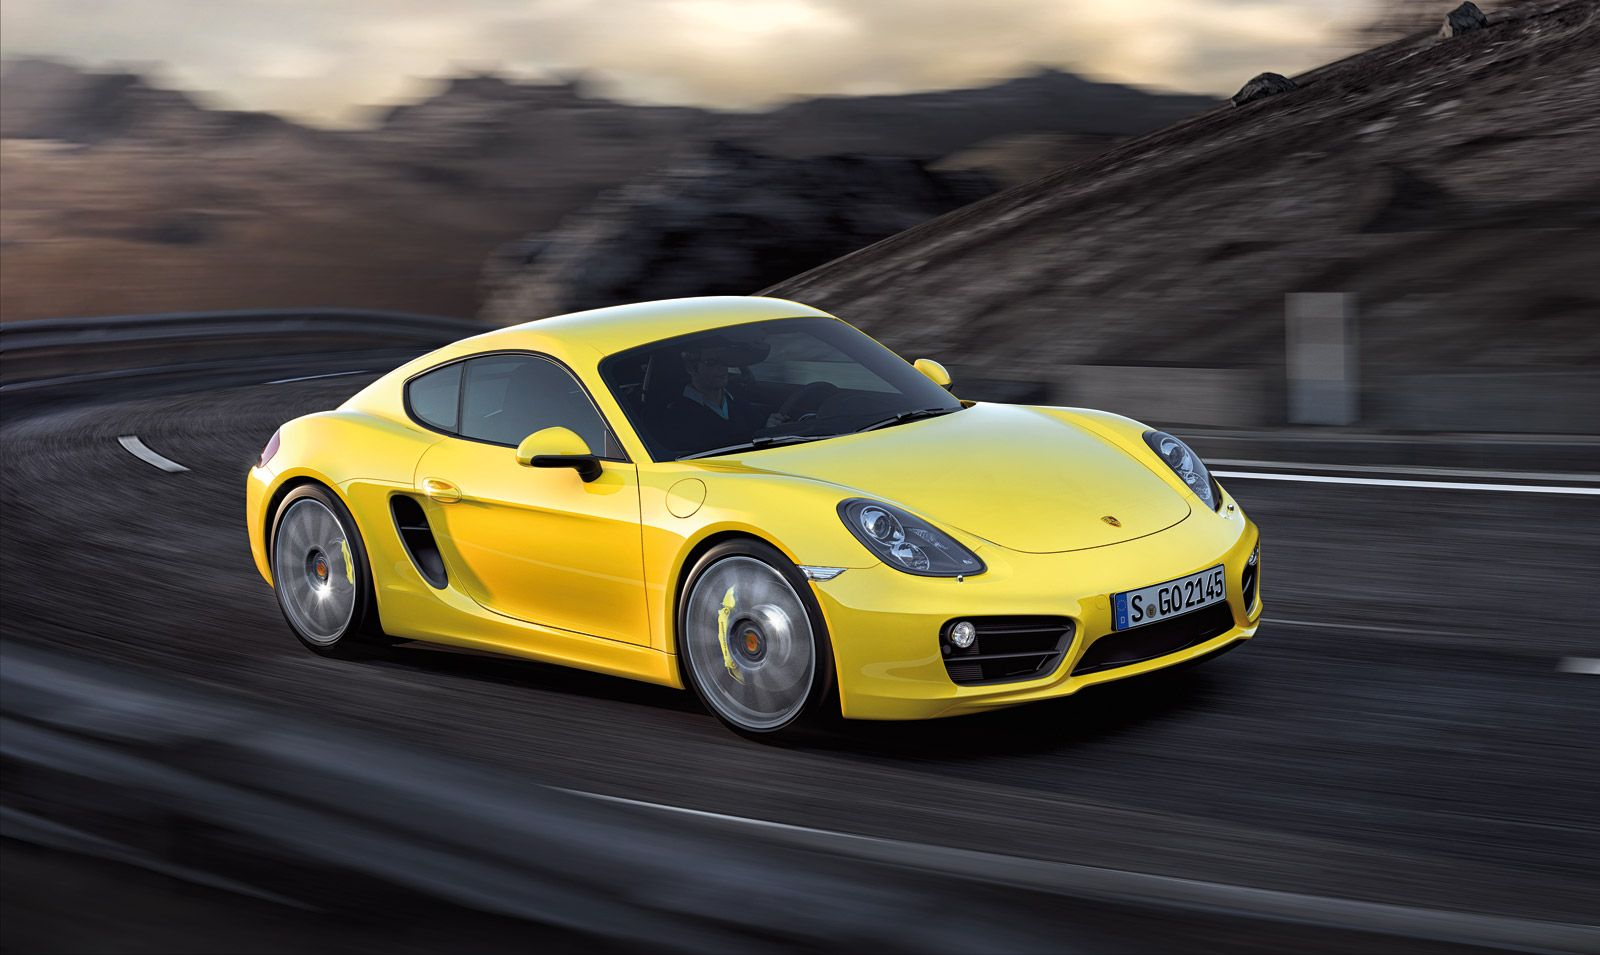 The 2014 Porsche Cayman Is One Of The Top Rated Sports Cars On TCC.